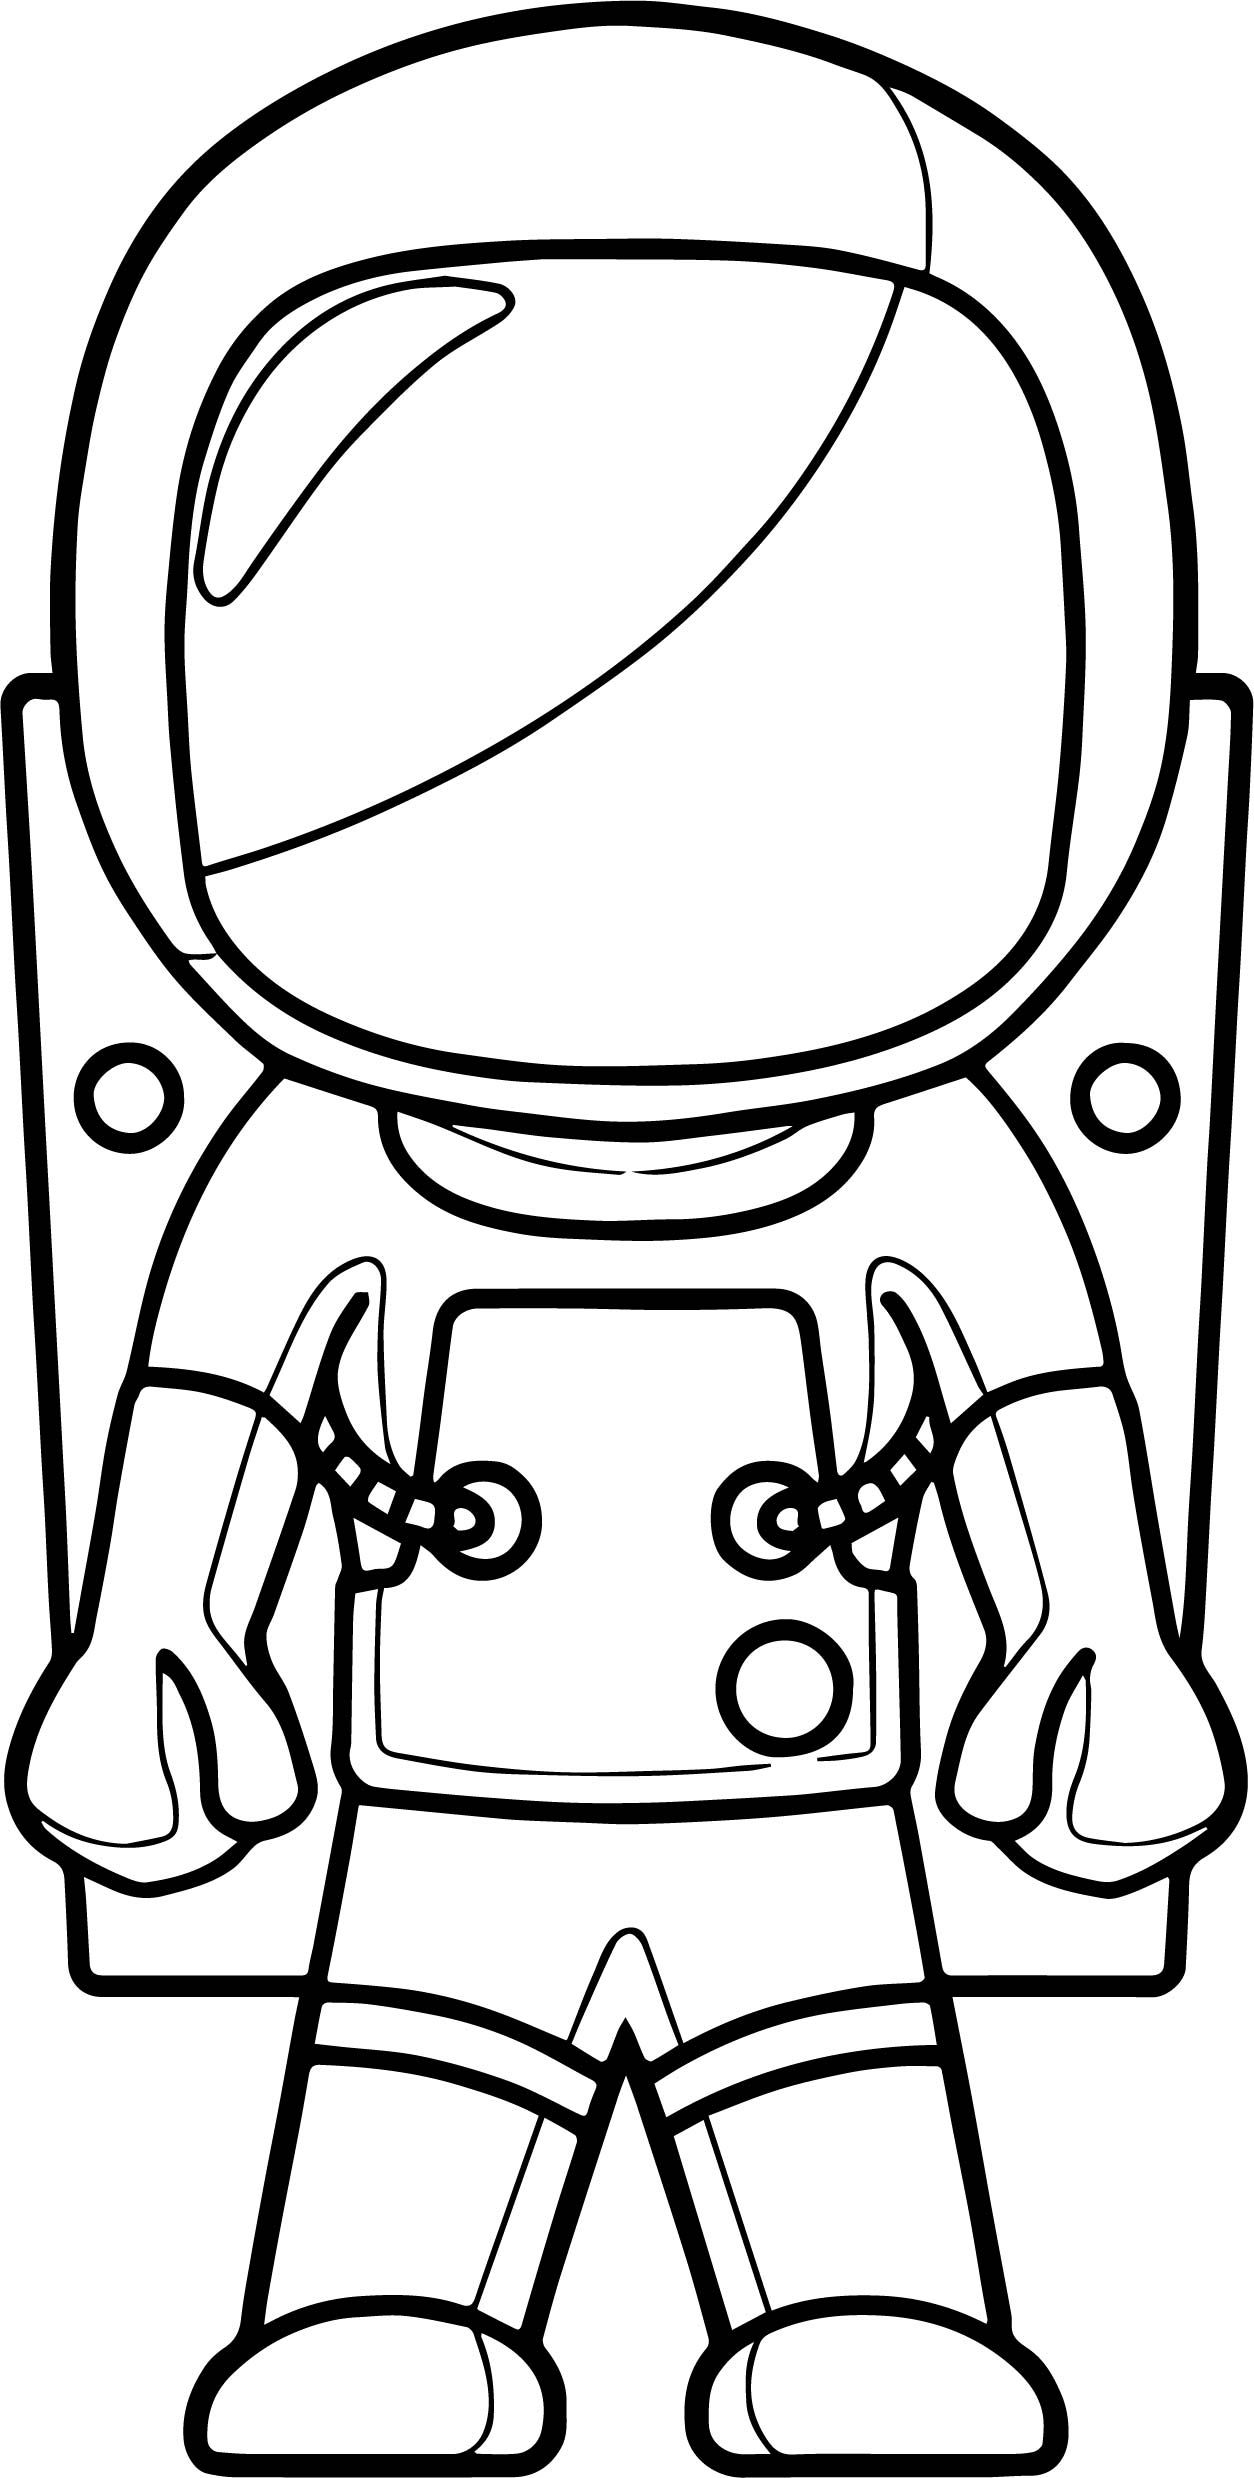 astronaut for coloring 12 coloring pictures astronaut print color craft astronaut coloring for